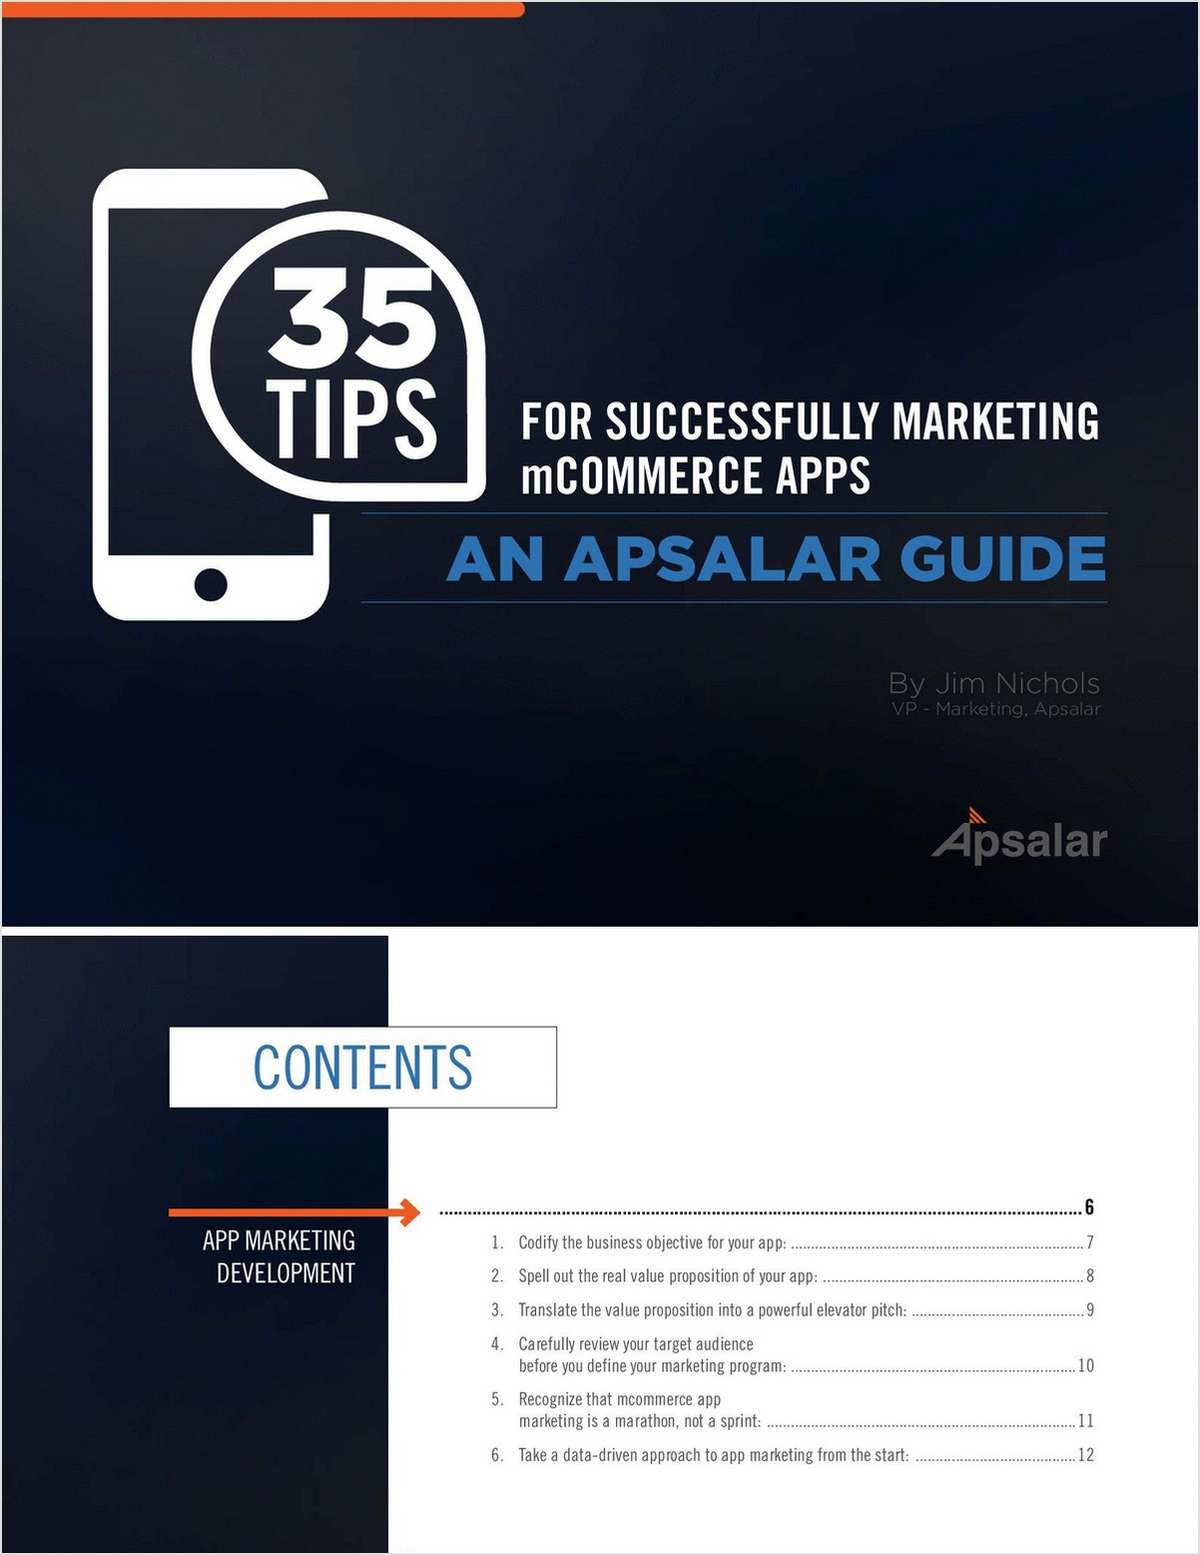 35 Tips for Marketing iPhone and Android mCommerce Apps